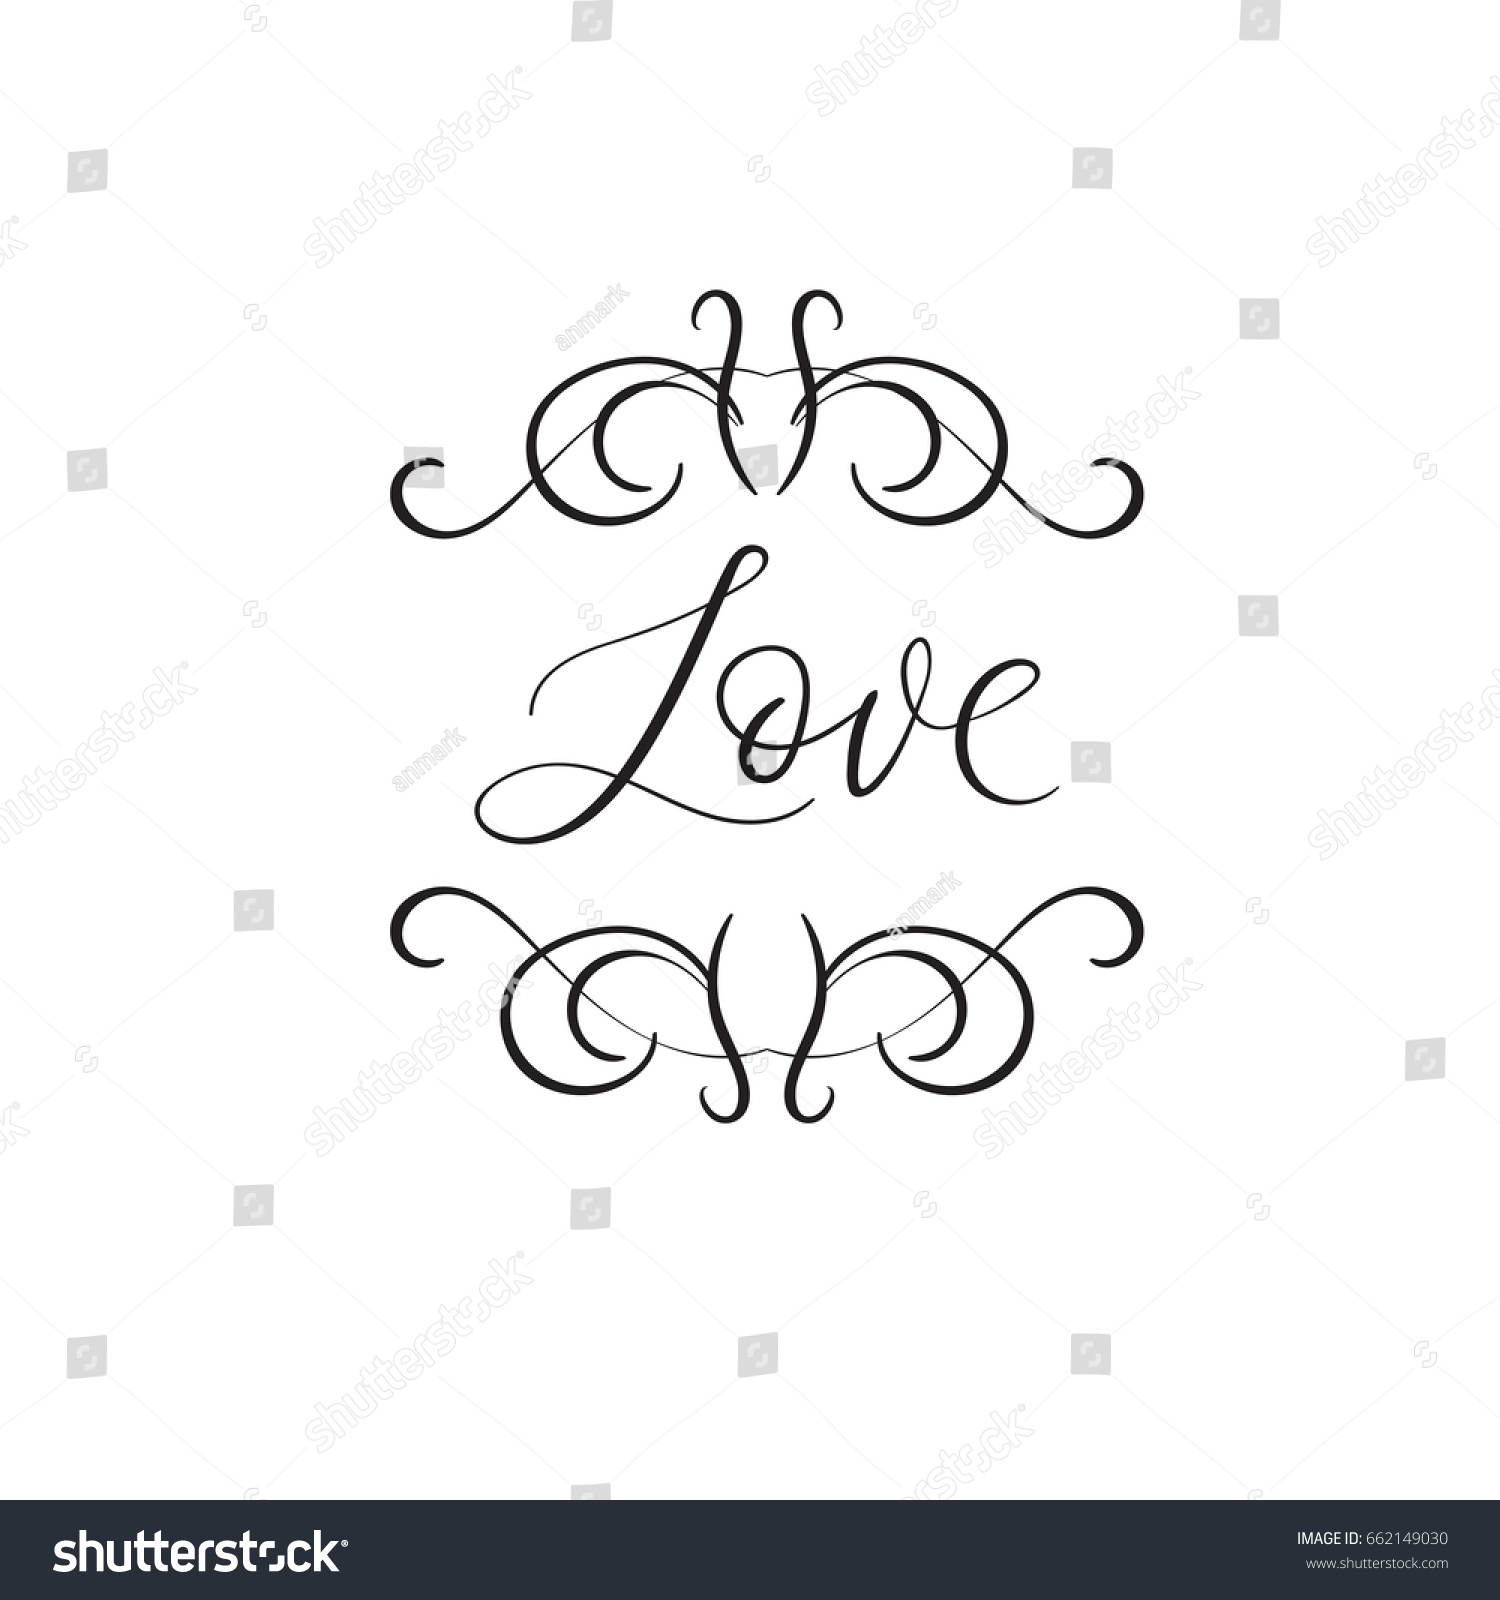 Love Handwritten Wedding Phrase Modern Calligraphy Stock Vector